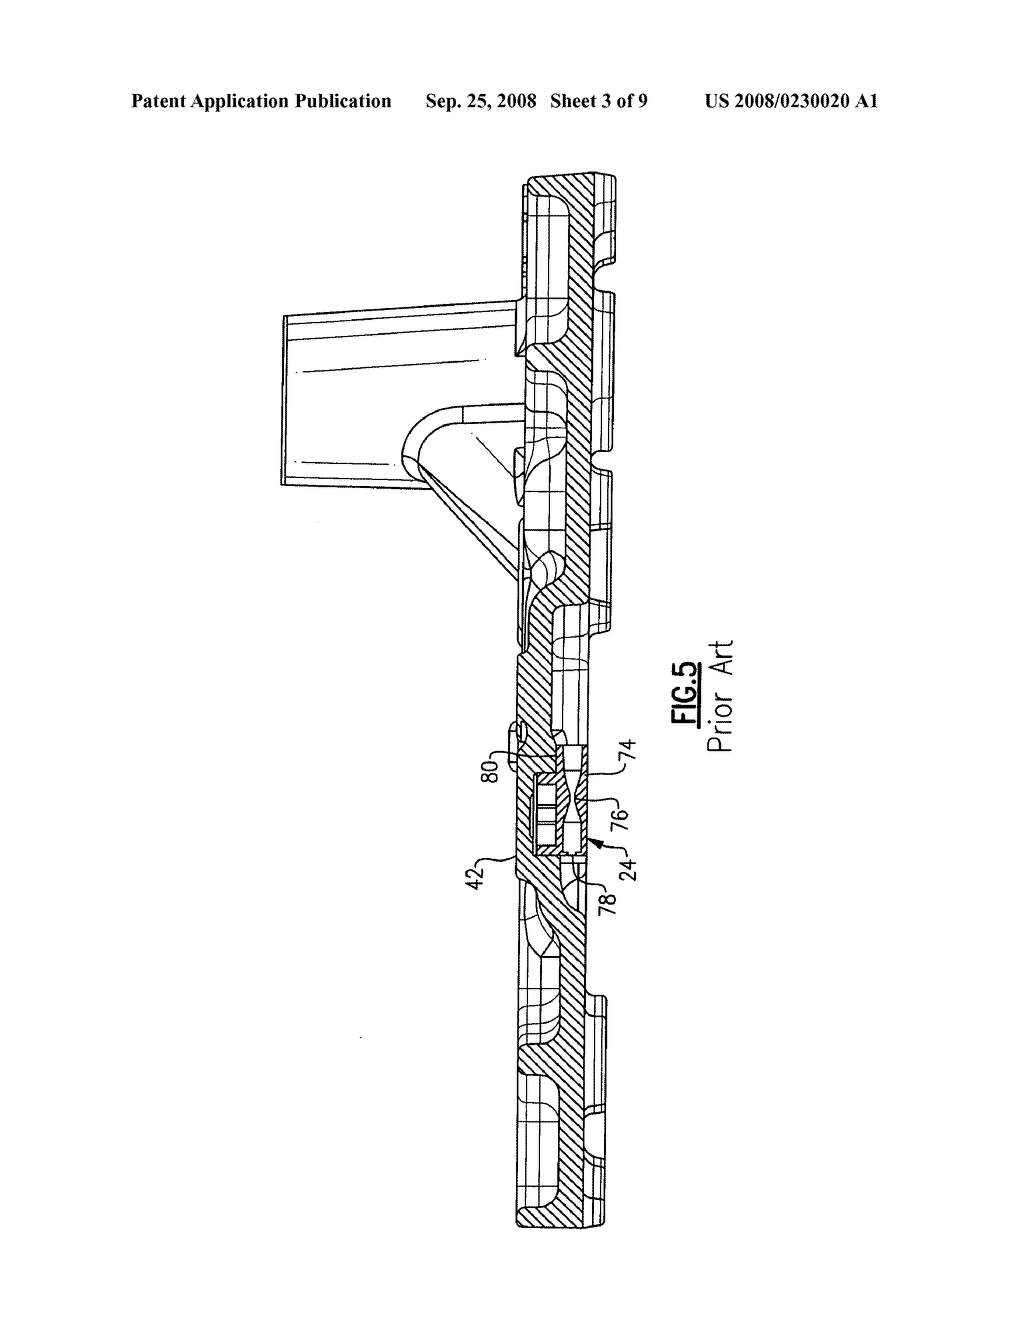 Lifter oil manifold assembly for variable activation and deactivation of  valves in an internal combustion engine - diagram, schematic, and image 04